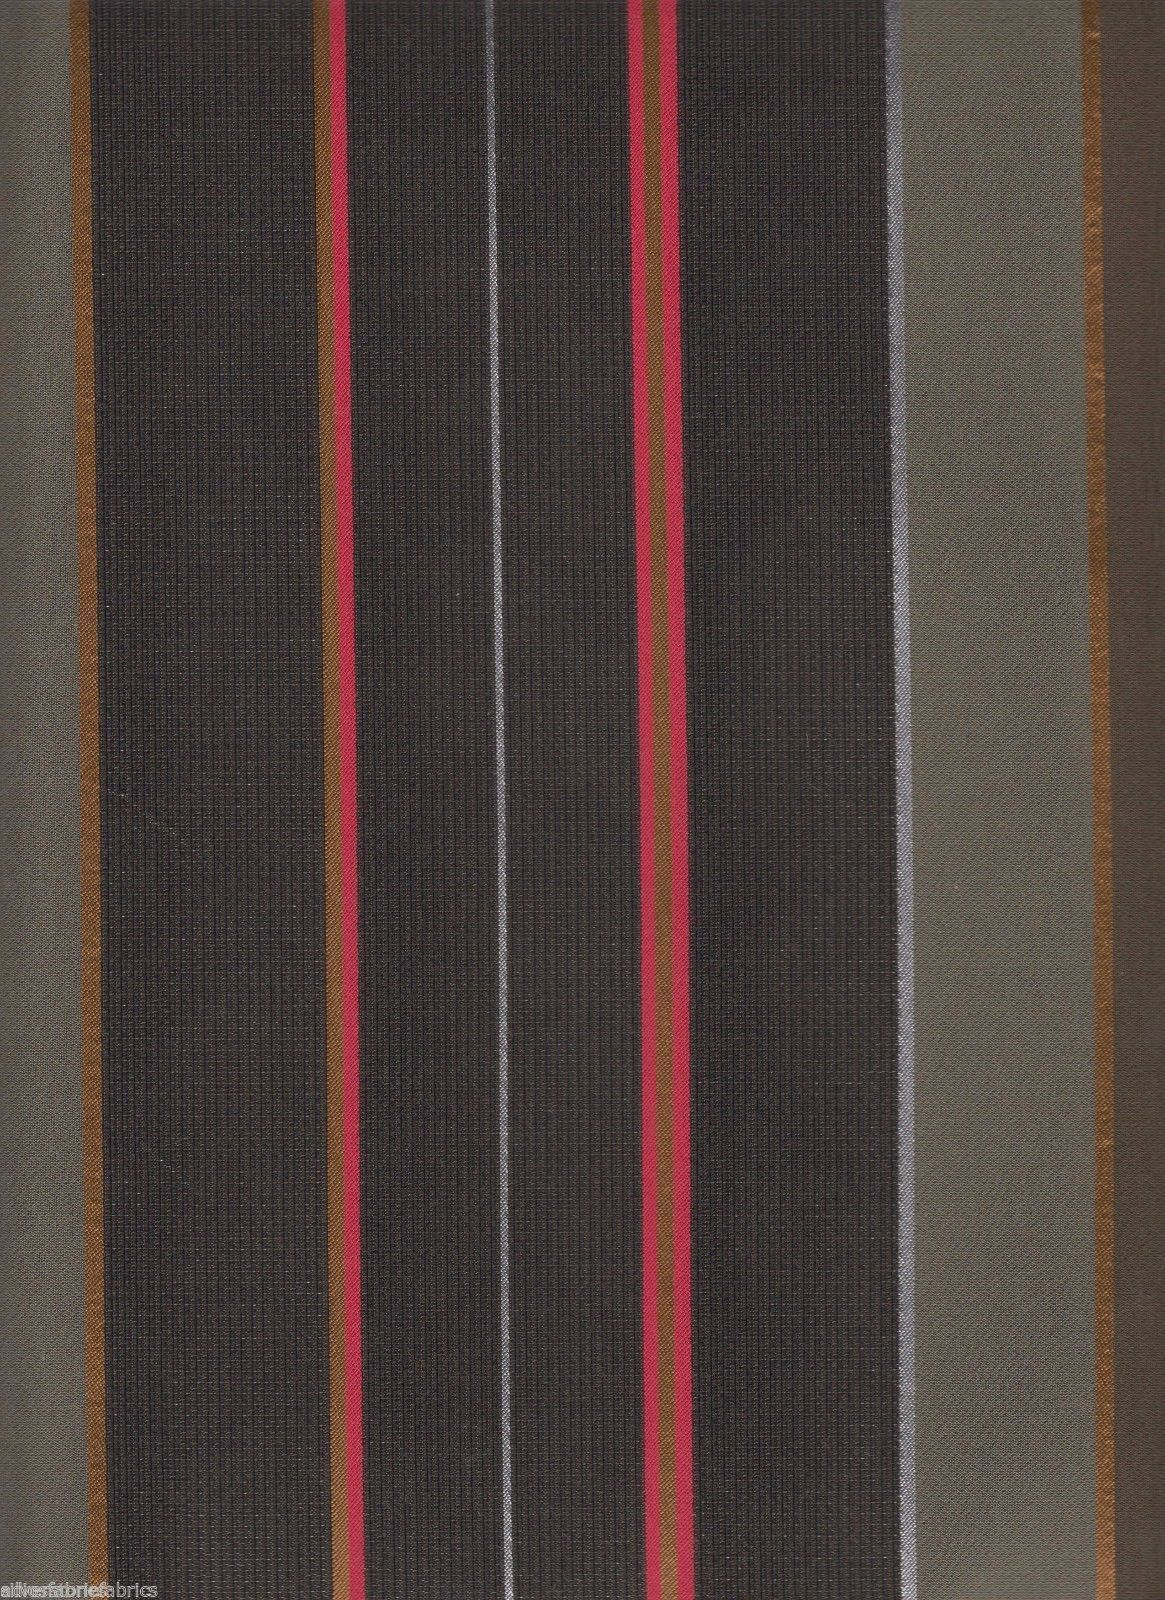 1.25 yds Maharam Upholstery Fabric Repeat Classic Stripe Cadet 462170-004 FG-a